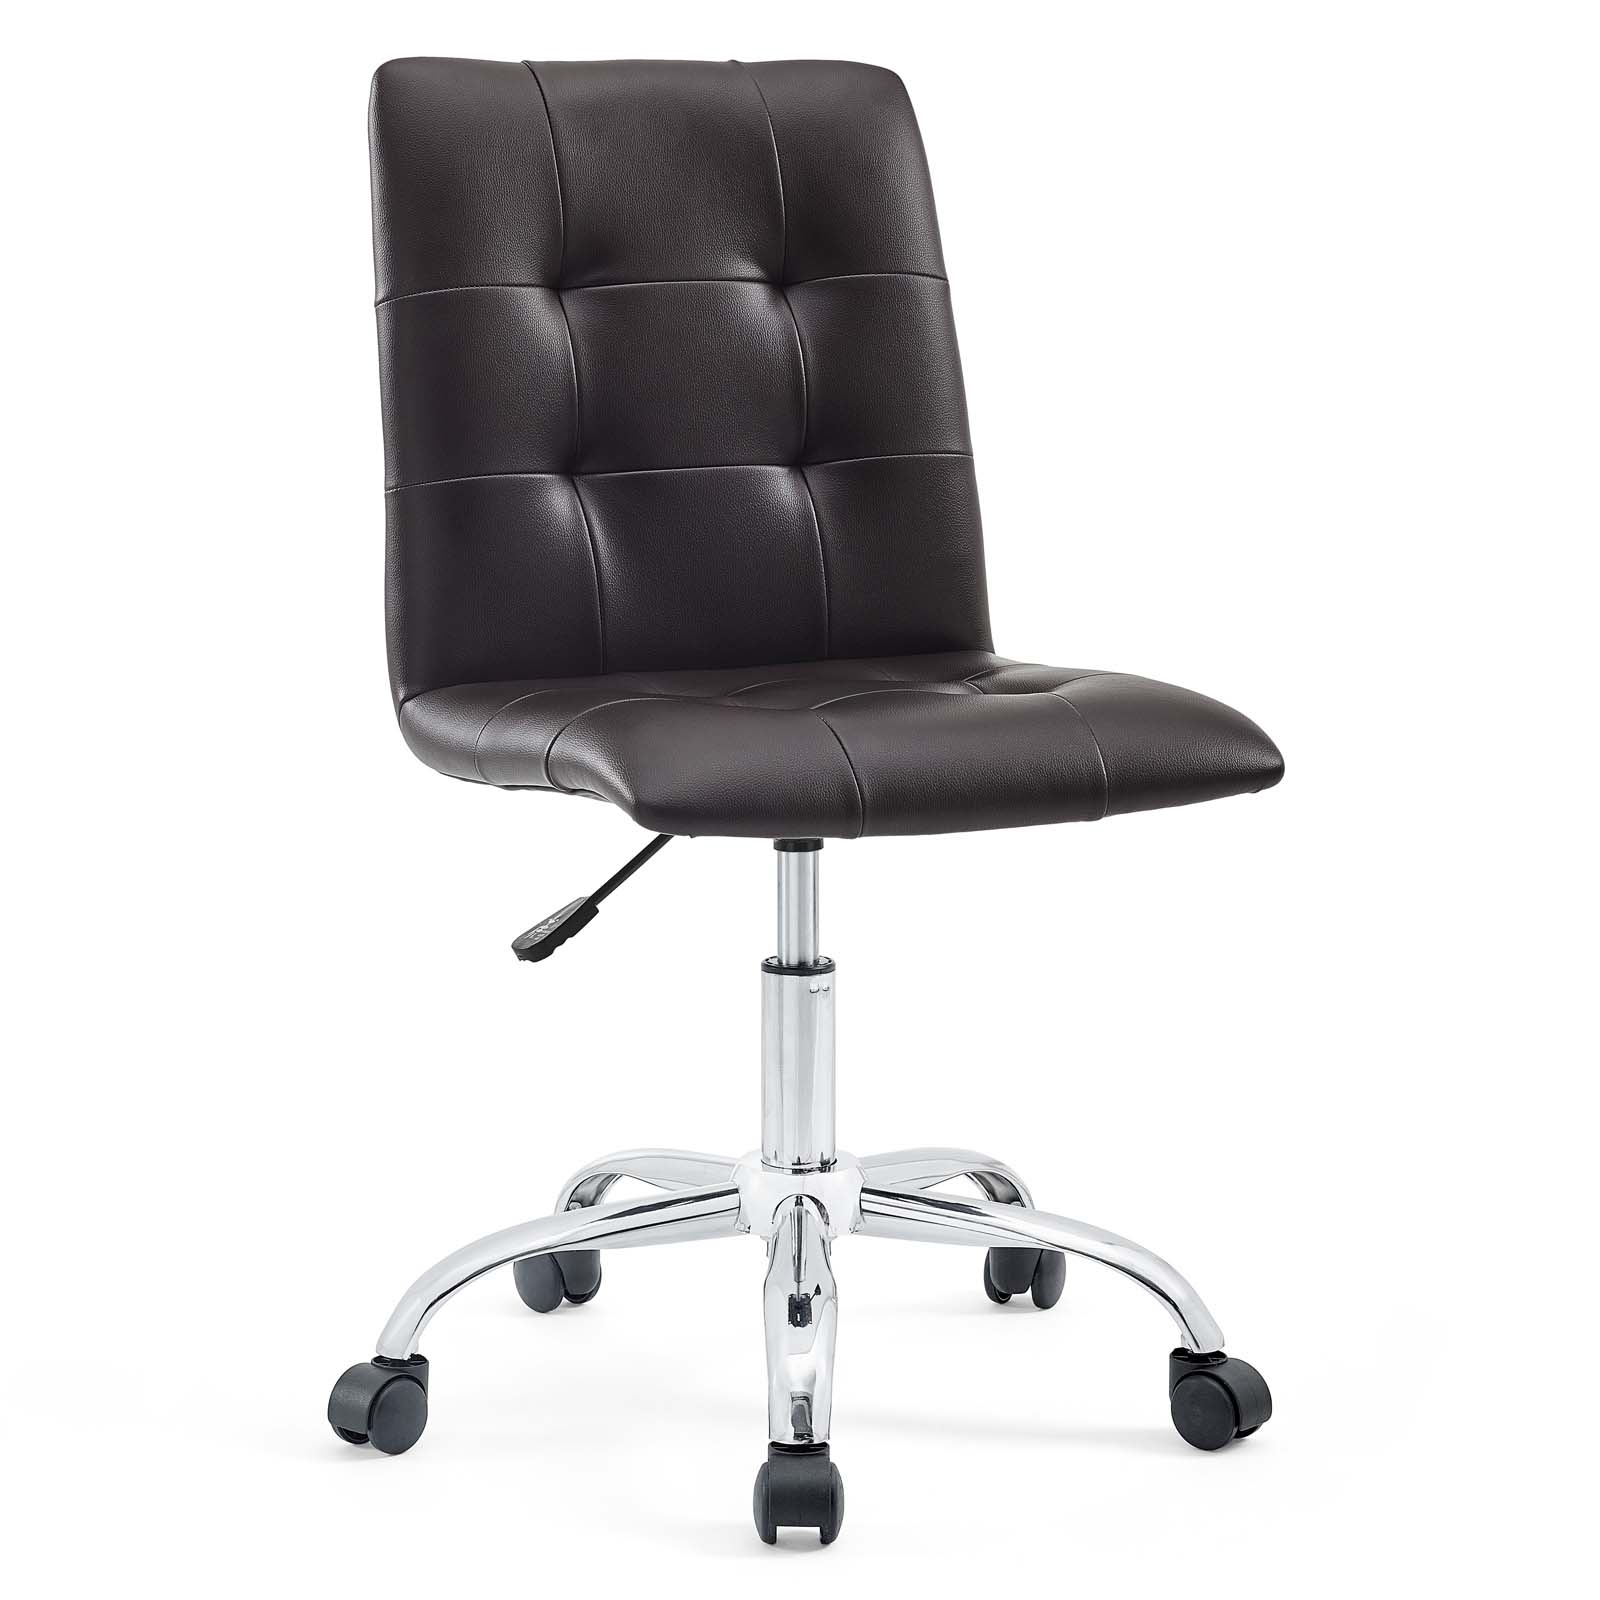 Armless Mid Back Office Chair in Brown